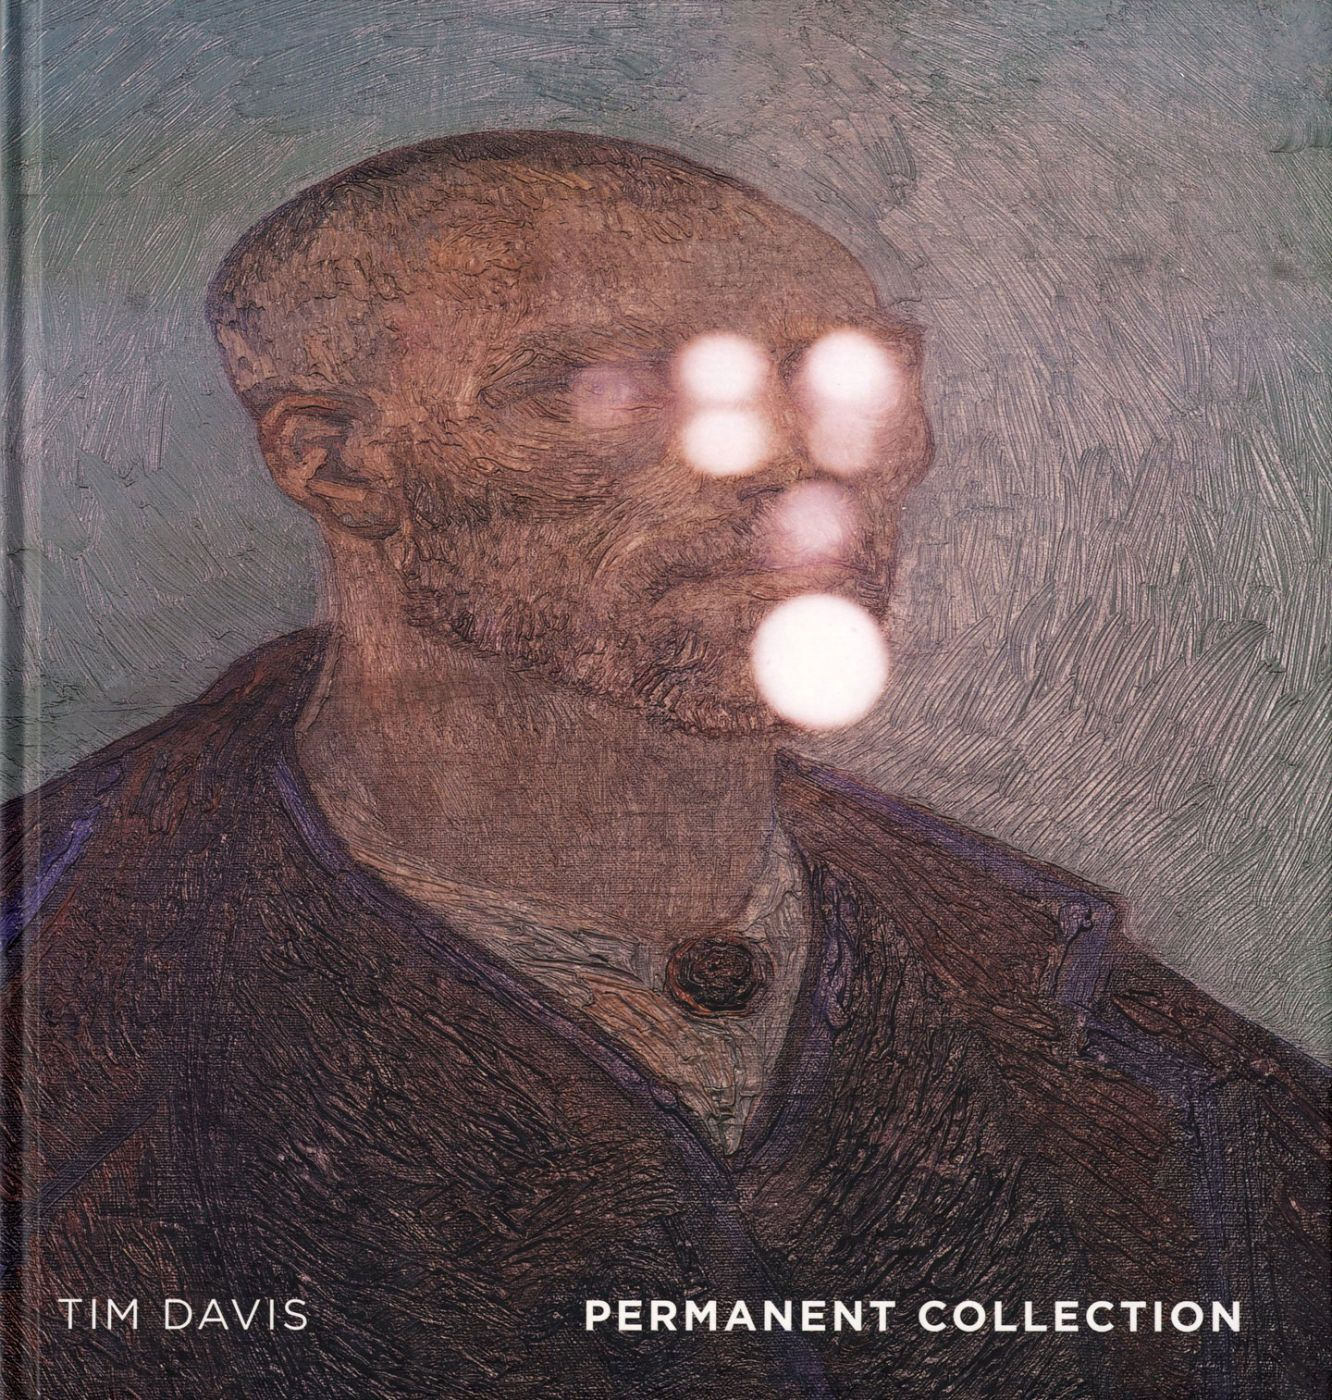 Tim Davis: Permanent Collection